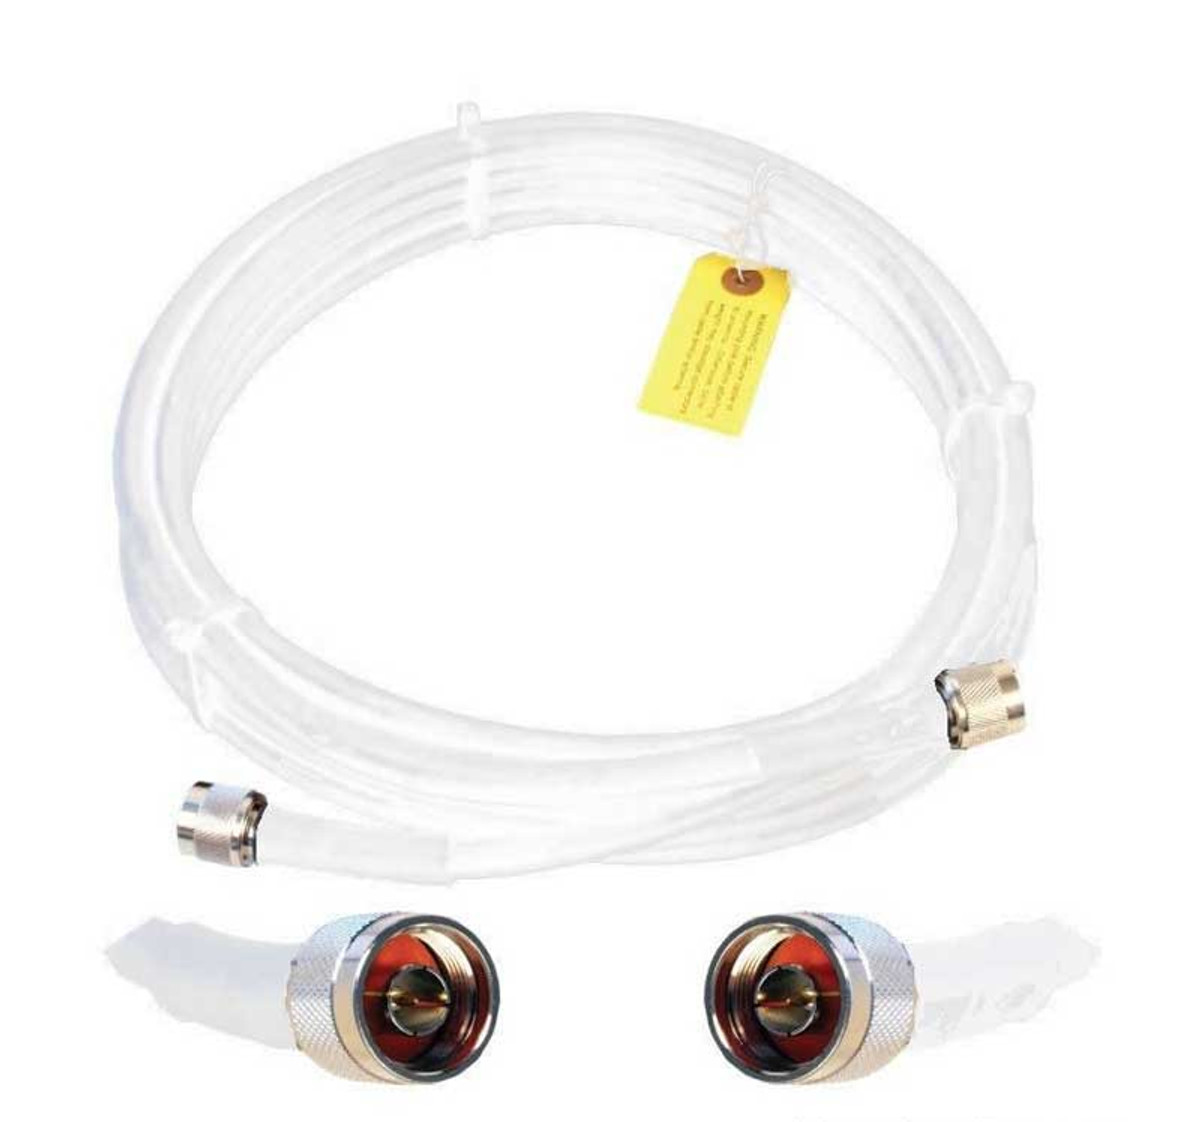 Wilson 952420 20-Foot WILSON400 Ultra Low Loss Coaxial Cable N Male to N Male White, detail